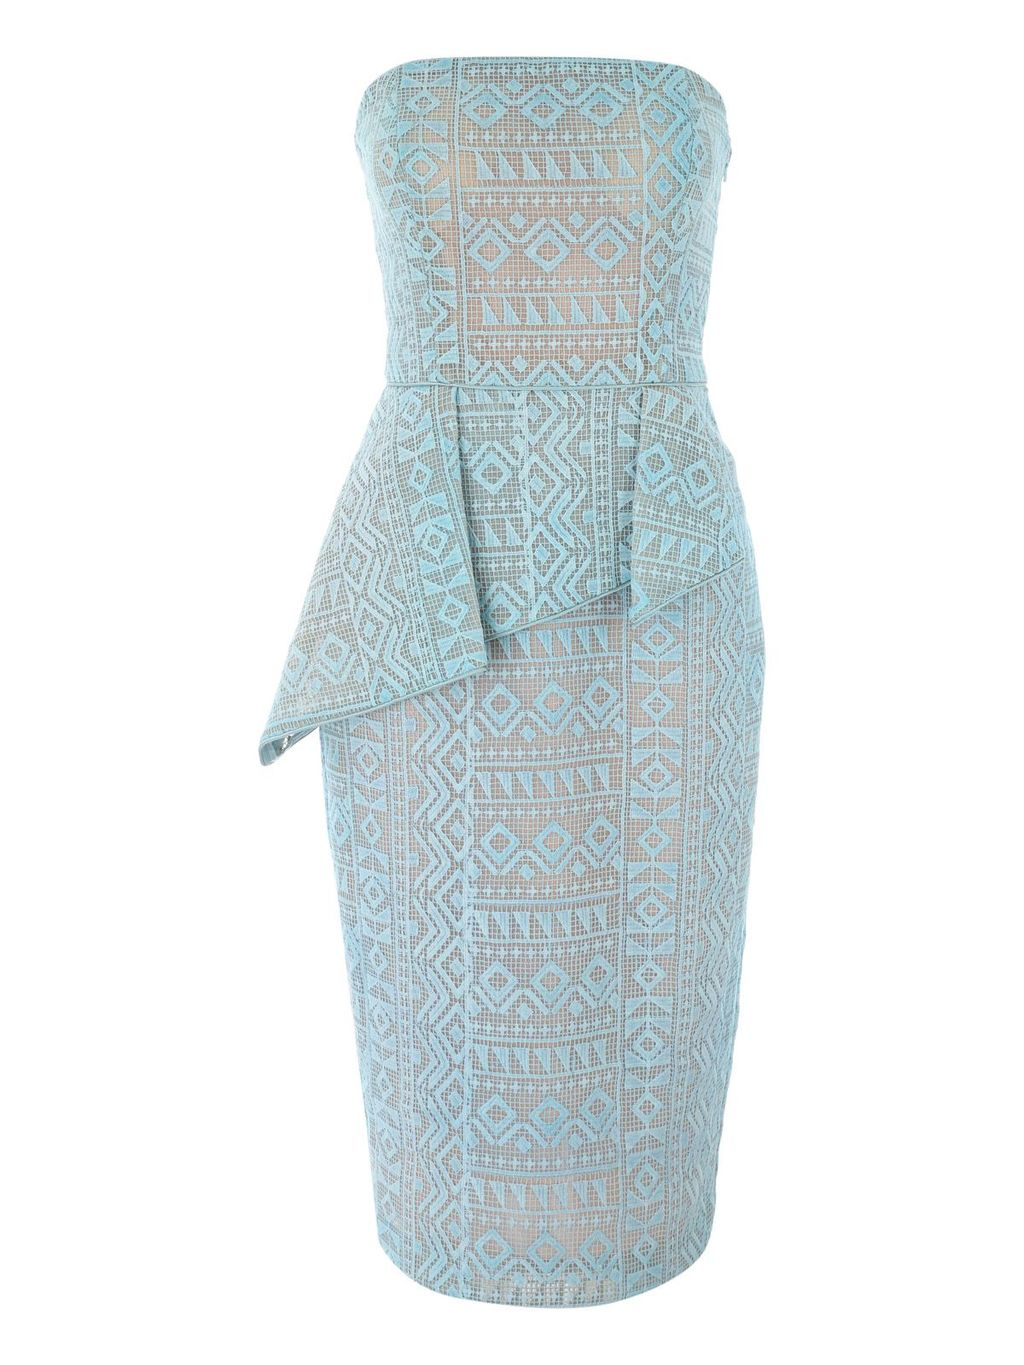 Bonded Lace Peplum Strapless Midi Dress, Aqua - style: shift; neckline: strapless (straight/sweetheart); fit: tailored/fitted; sleeve style: sleeveless; waist detail: peplum waist detail; predominant colour: pale blue; secondary colour: nude; length: on the knee; fibres: polyester/polyamide - 100%; occasions: occasion; sleeve length: sleeveless; texture group: lace; pattern type: fabric; pattern: patterned/print; embellishment: lace; season: s/s 2016; wardrobe: event; embellishment location: pattern